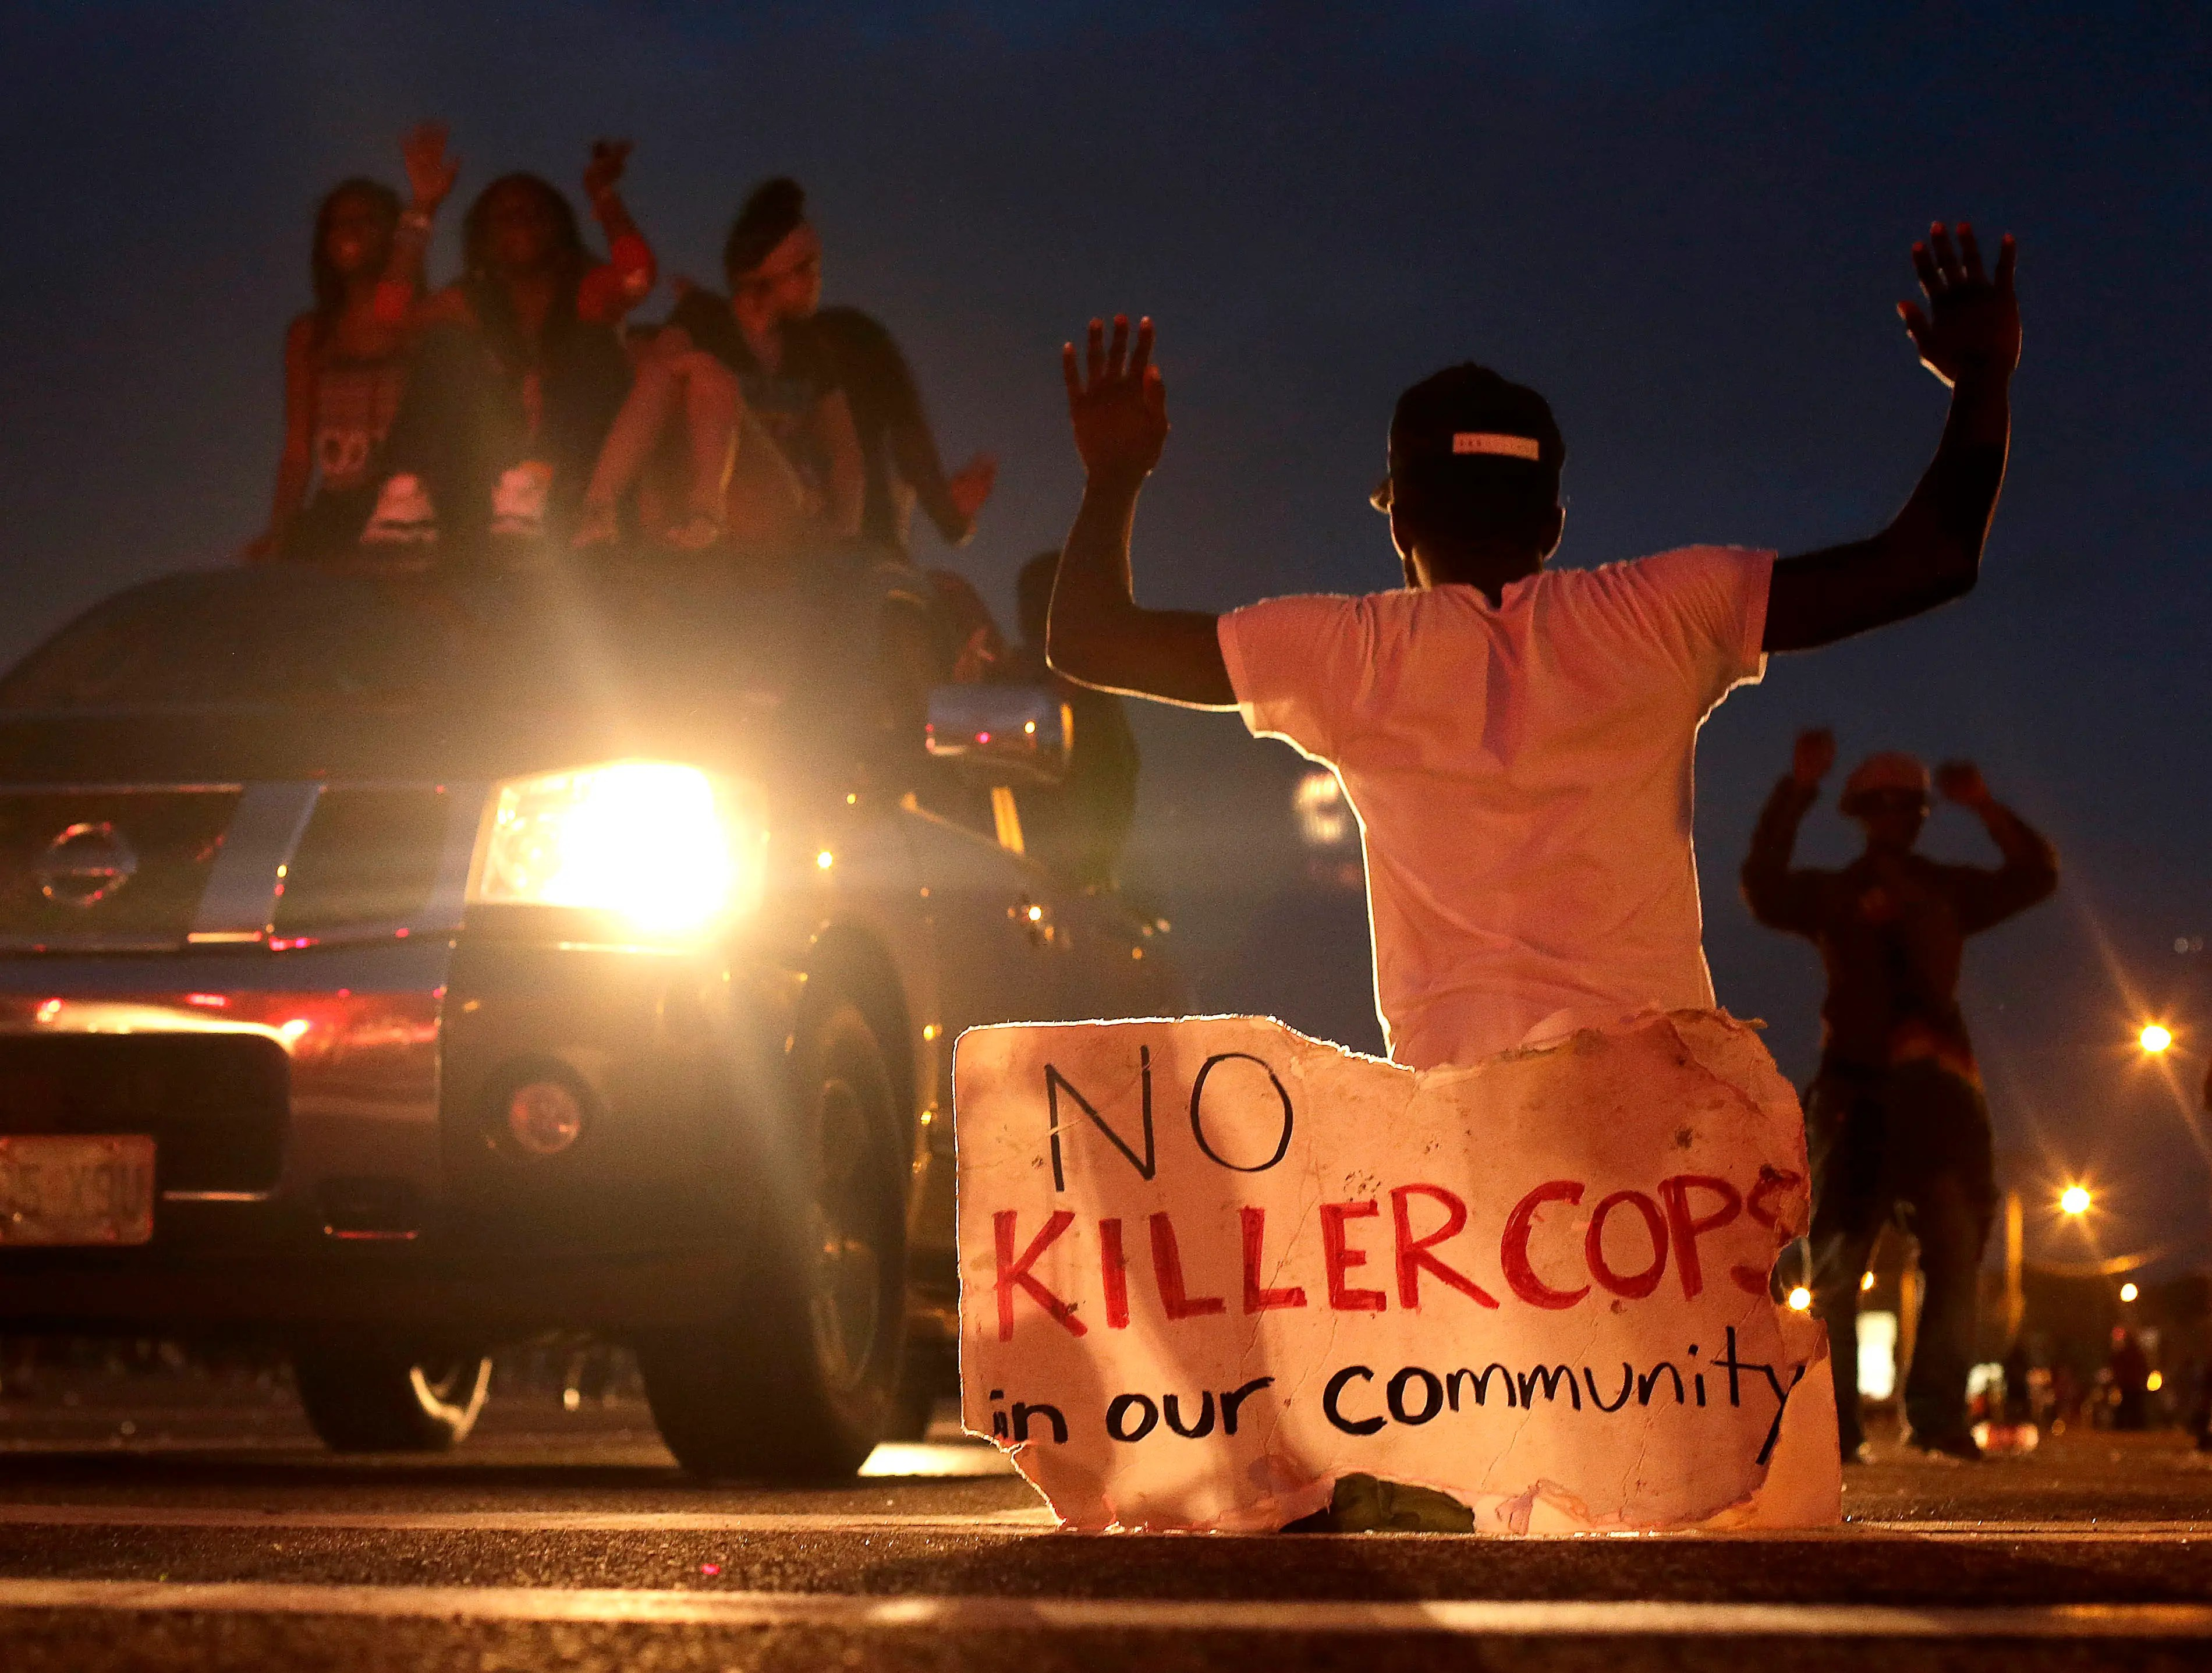 ferguson michael brown police shootings protests